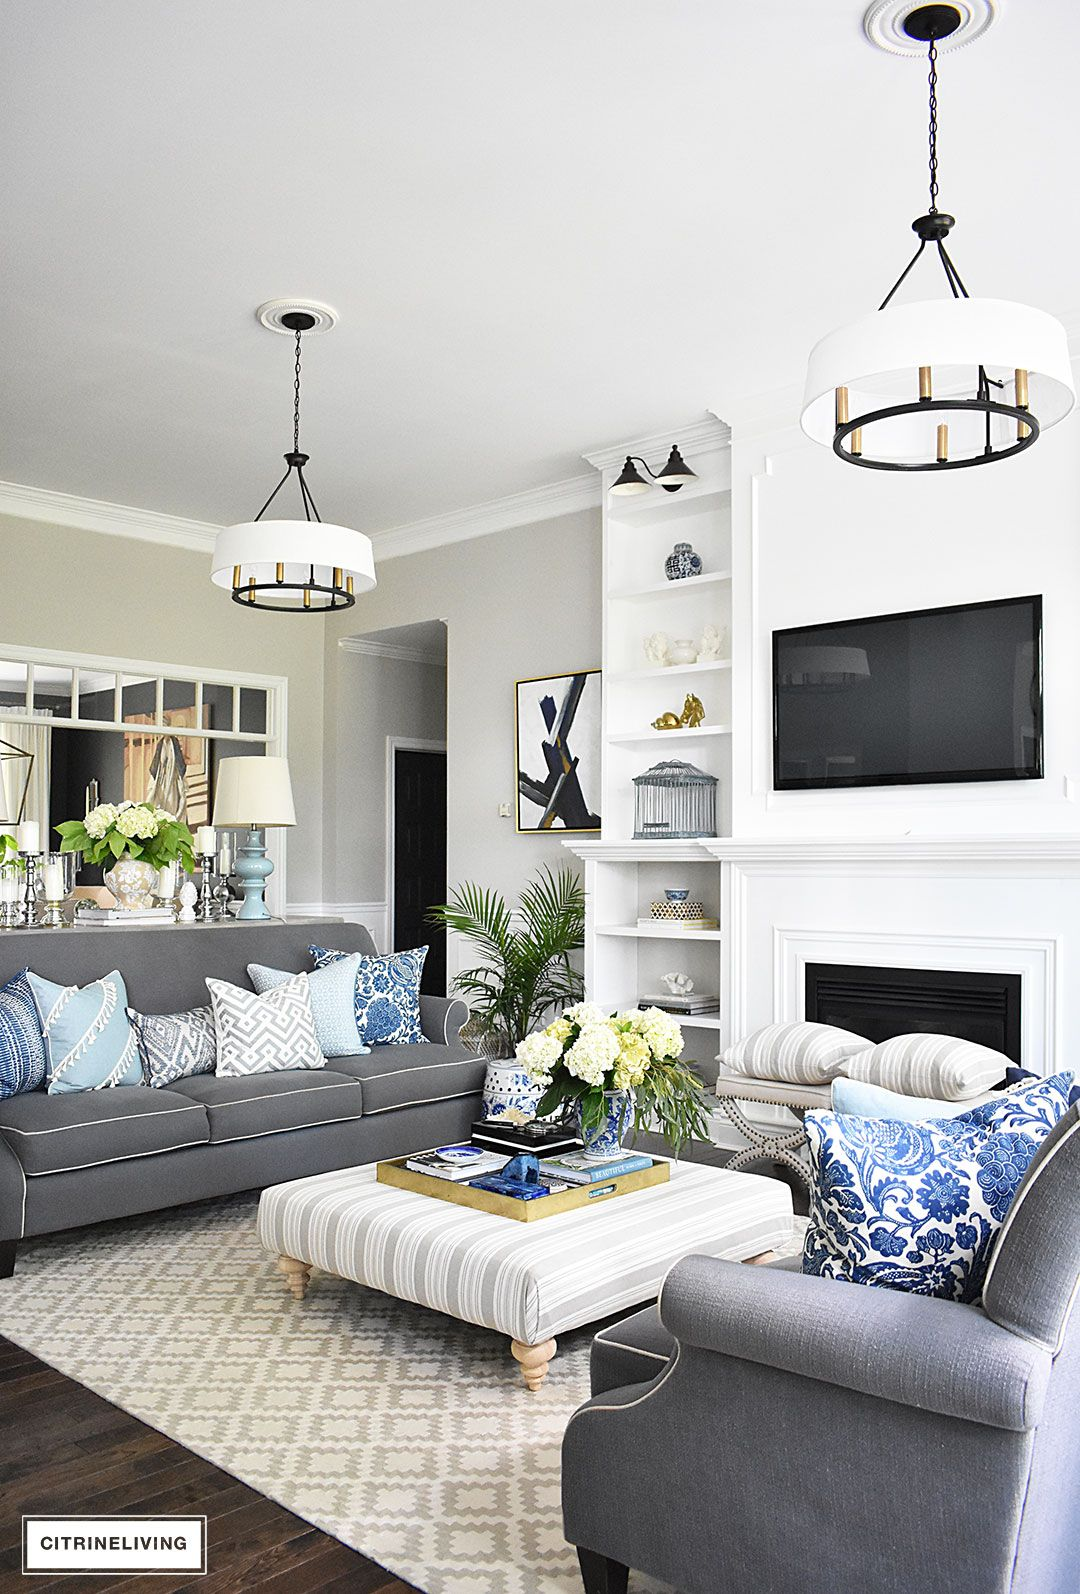 Best 20 Fresh Ideas For Decorating With Blue And White 400 x 300